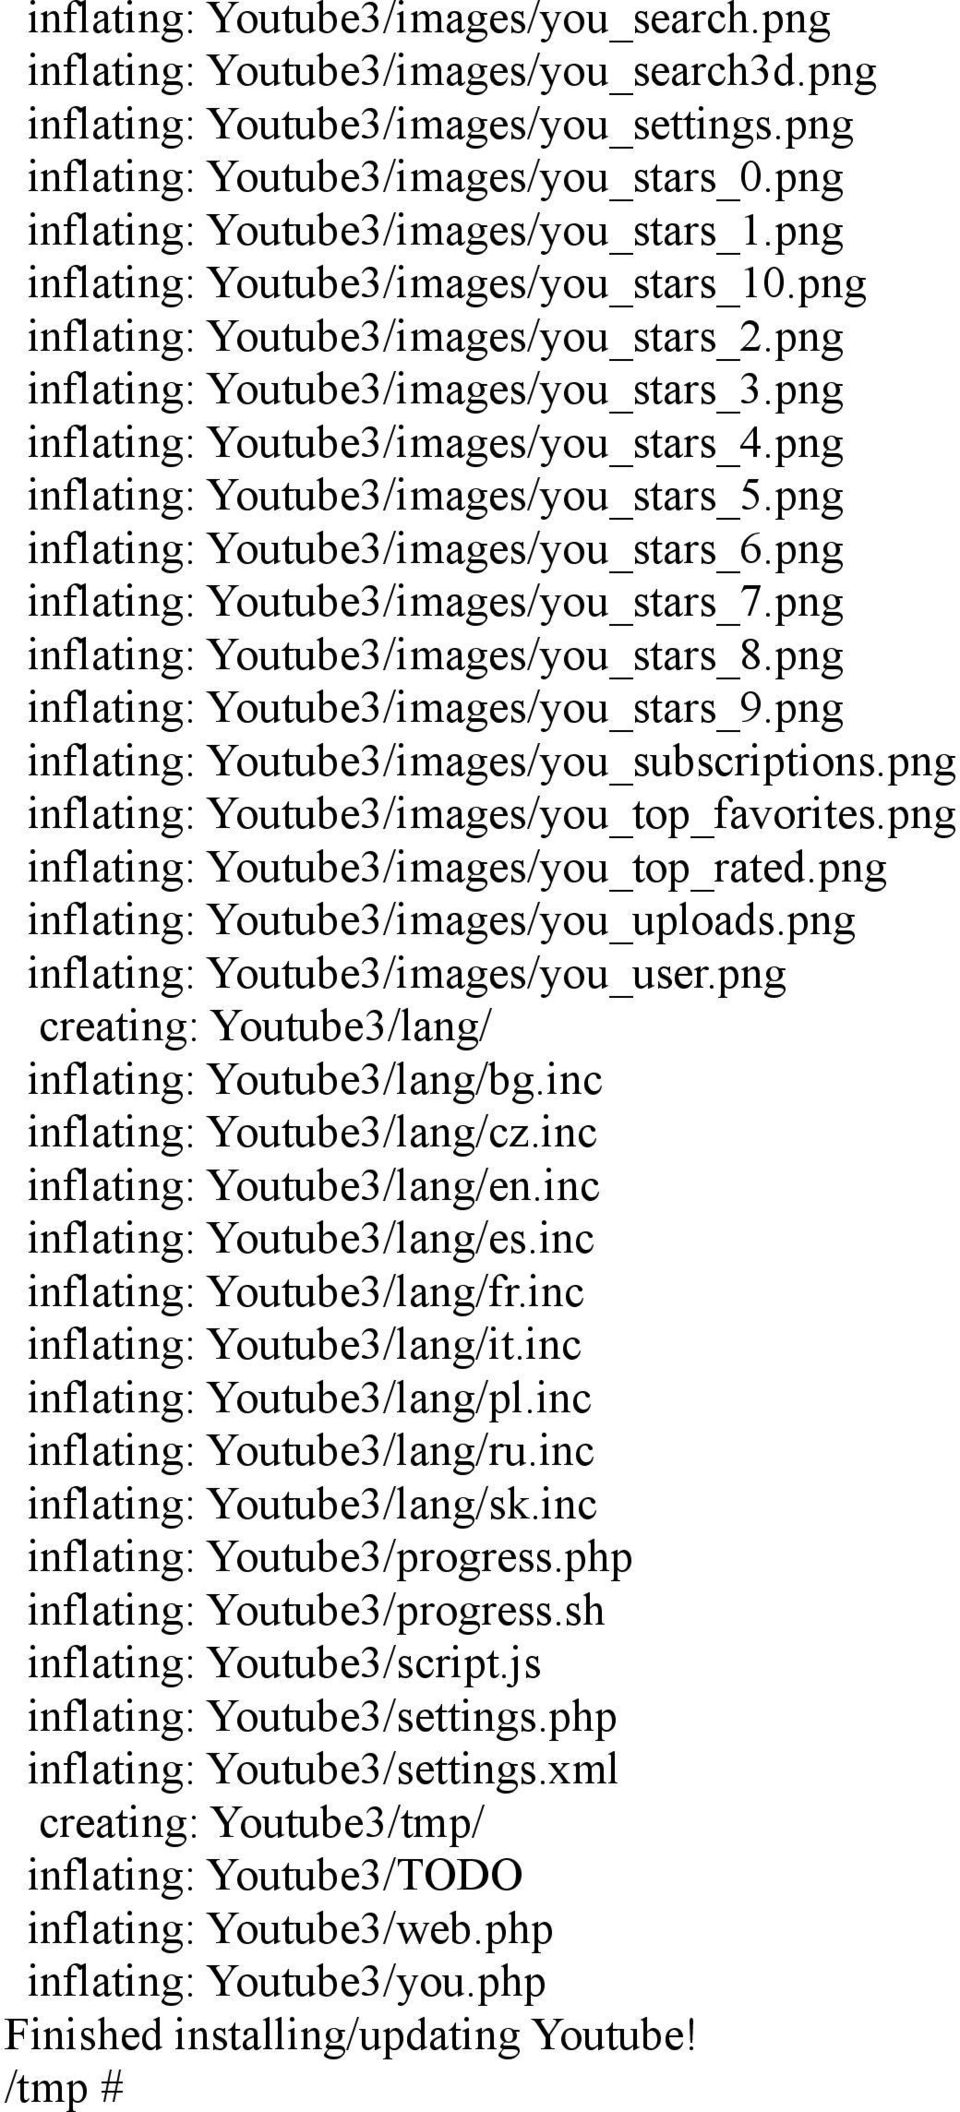 png inflating: Youtube3/images/you_stars_4.png inflating: Youtube3/images/you_stars_5.png inflating: Youtube3/images/you_stars_6.png inflating: Youtube3/images/you_stars_7.